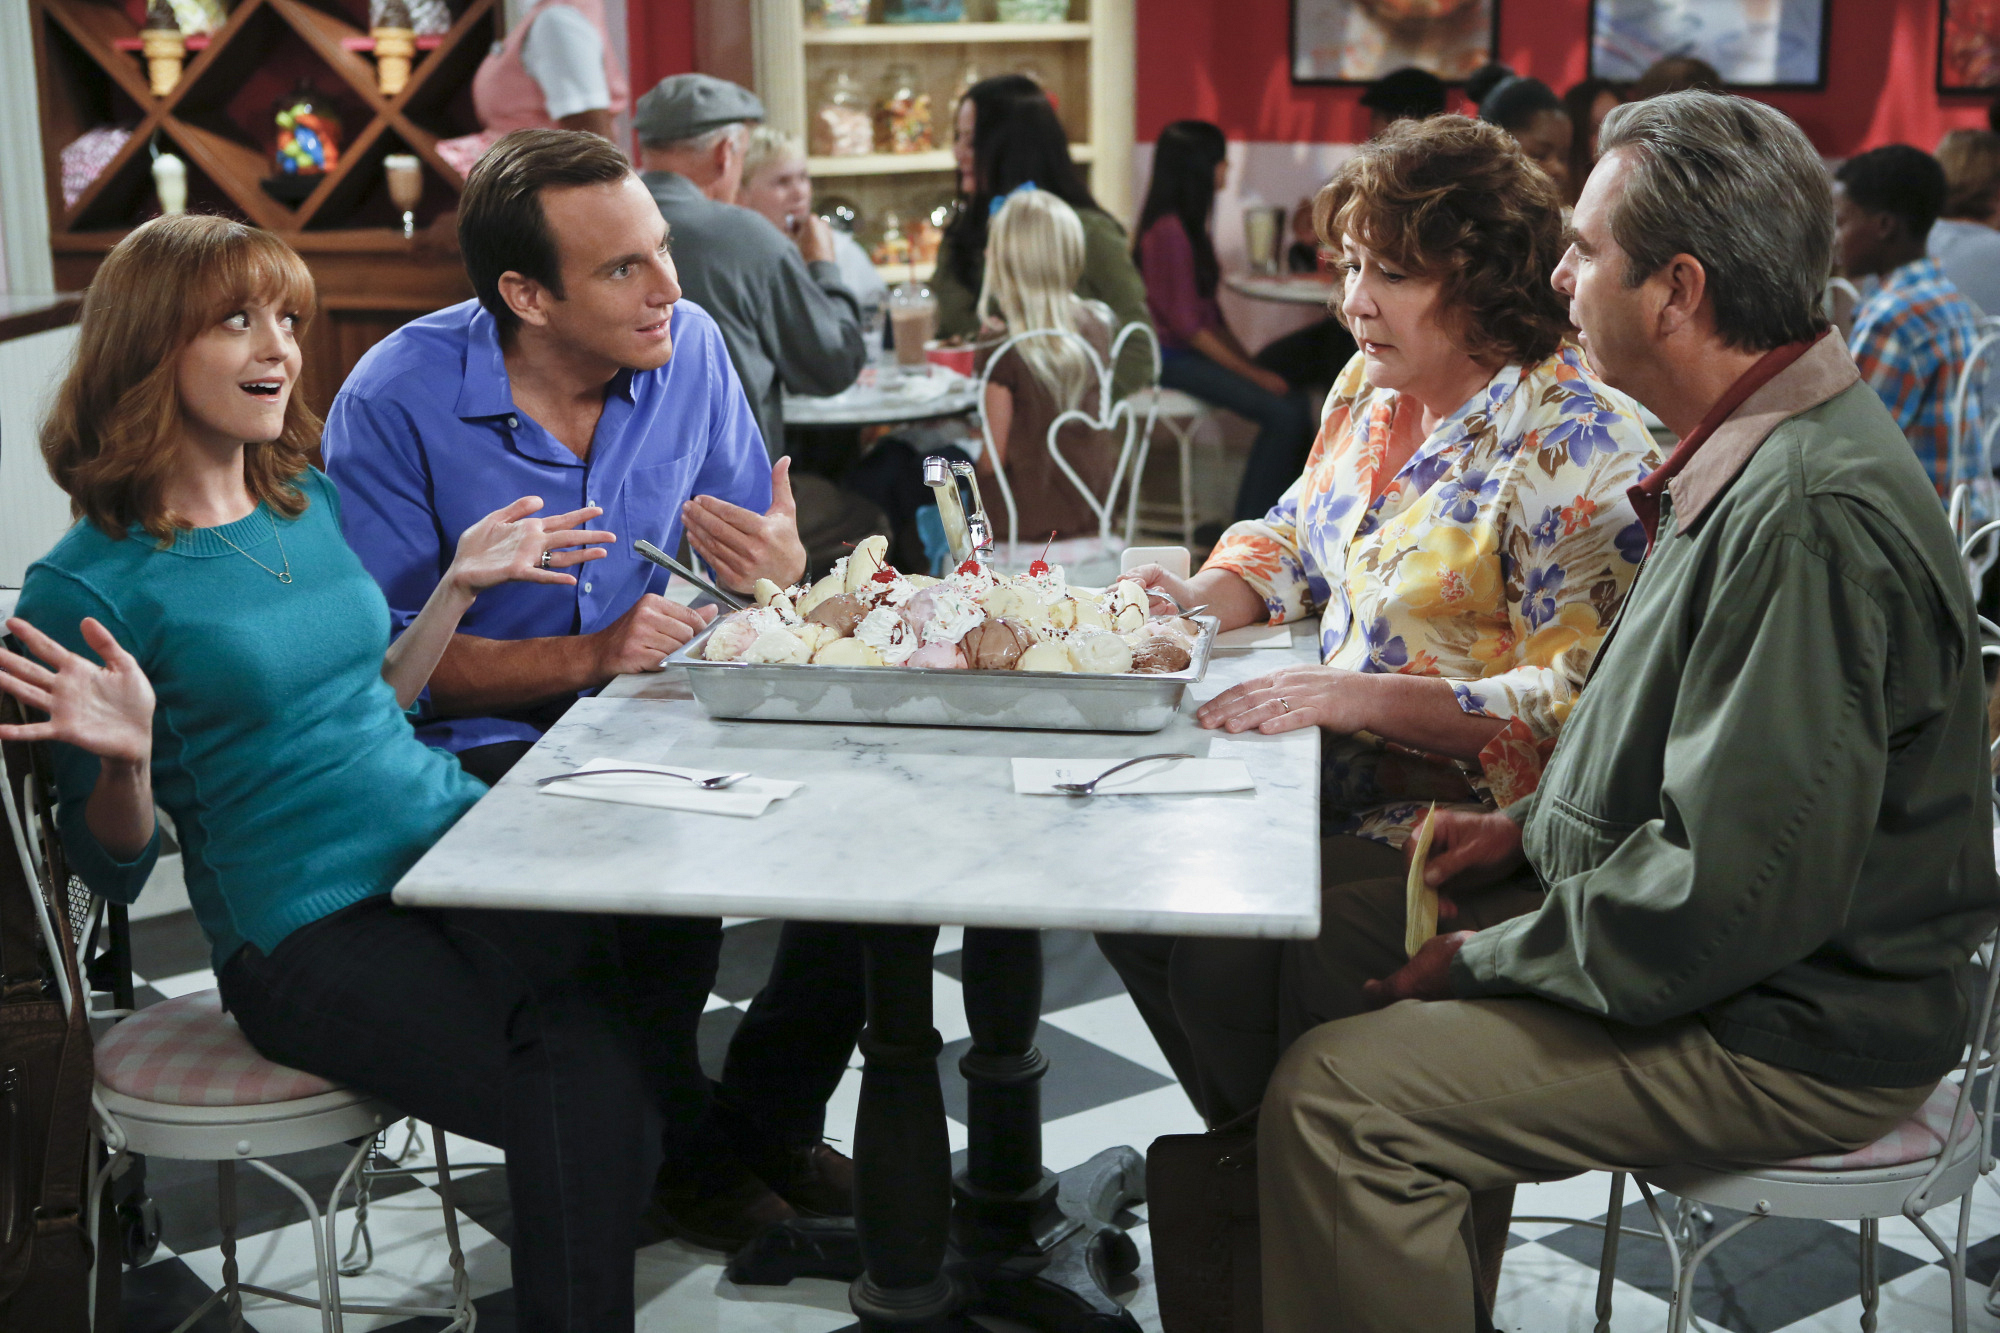 3. Nathan, Debbie, Carol and Tom - The Millers